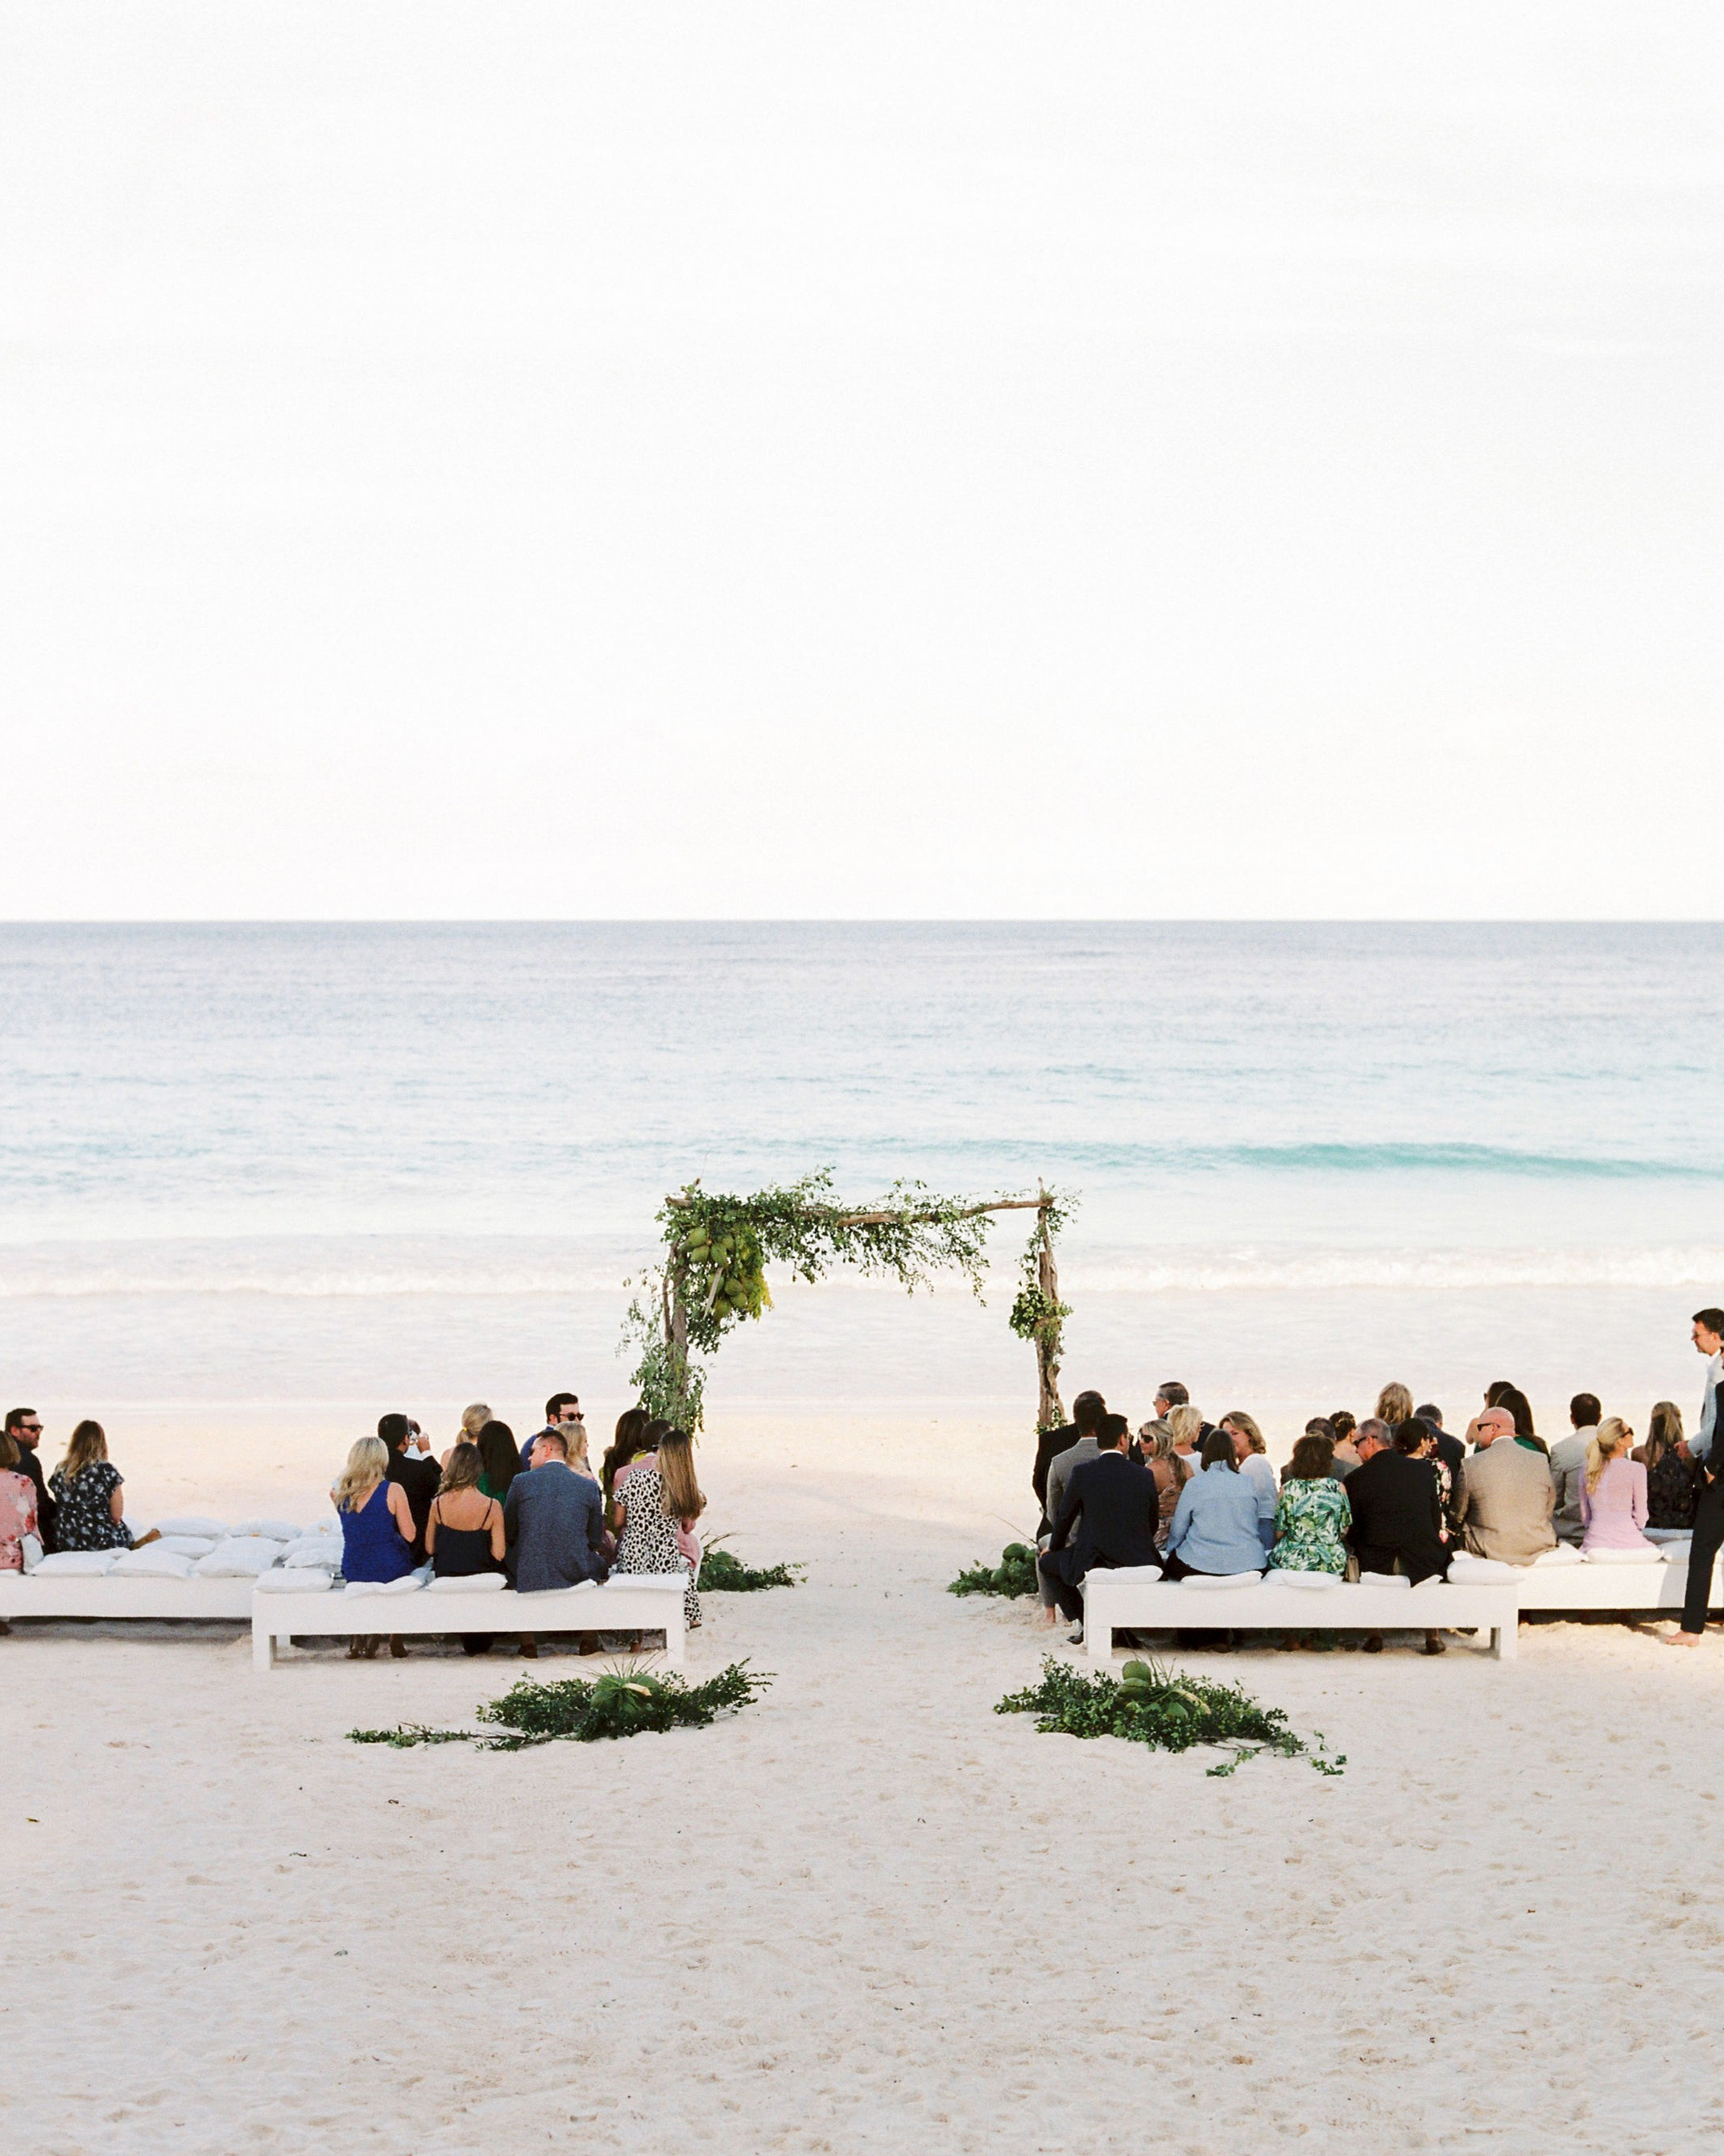 Sun, Sand, and Ceremony